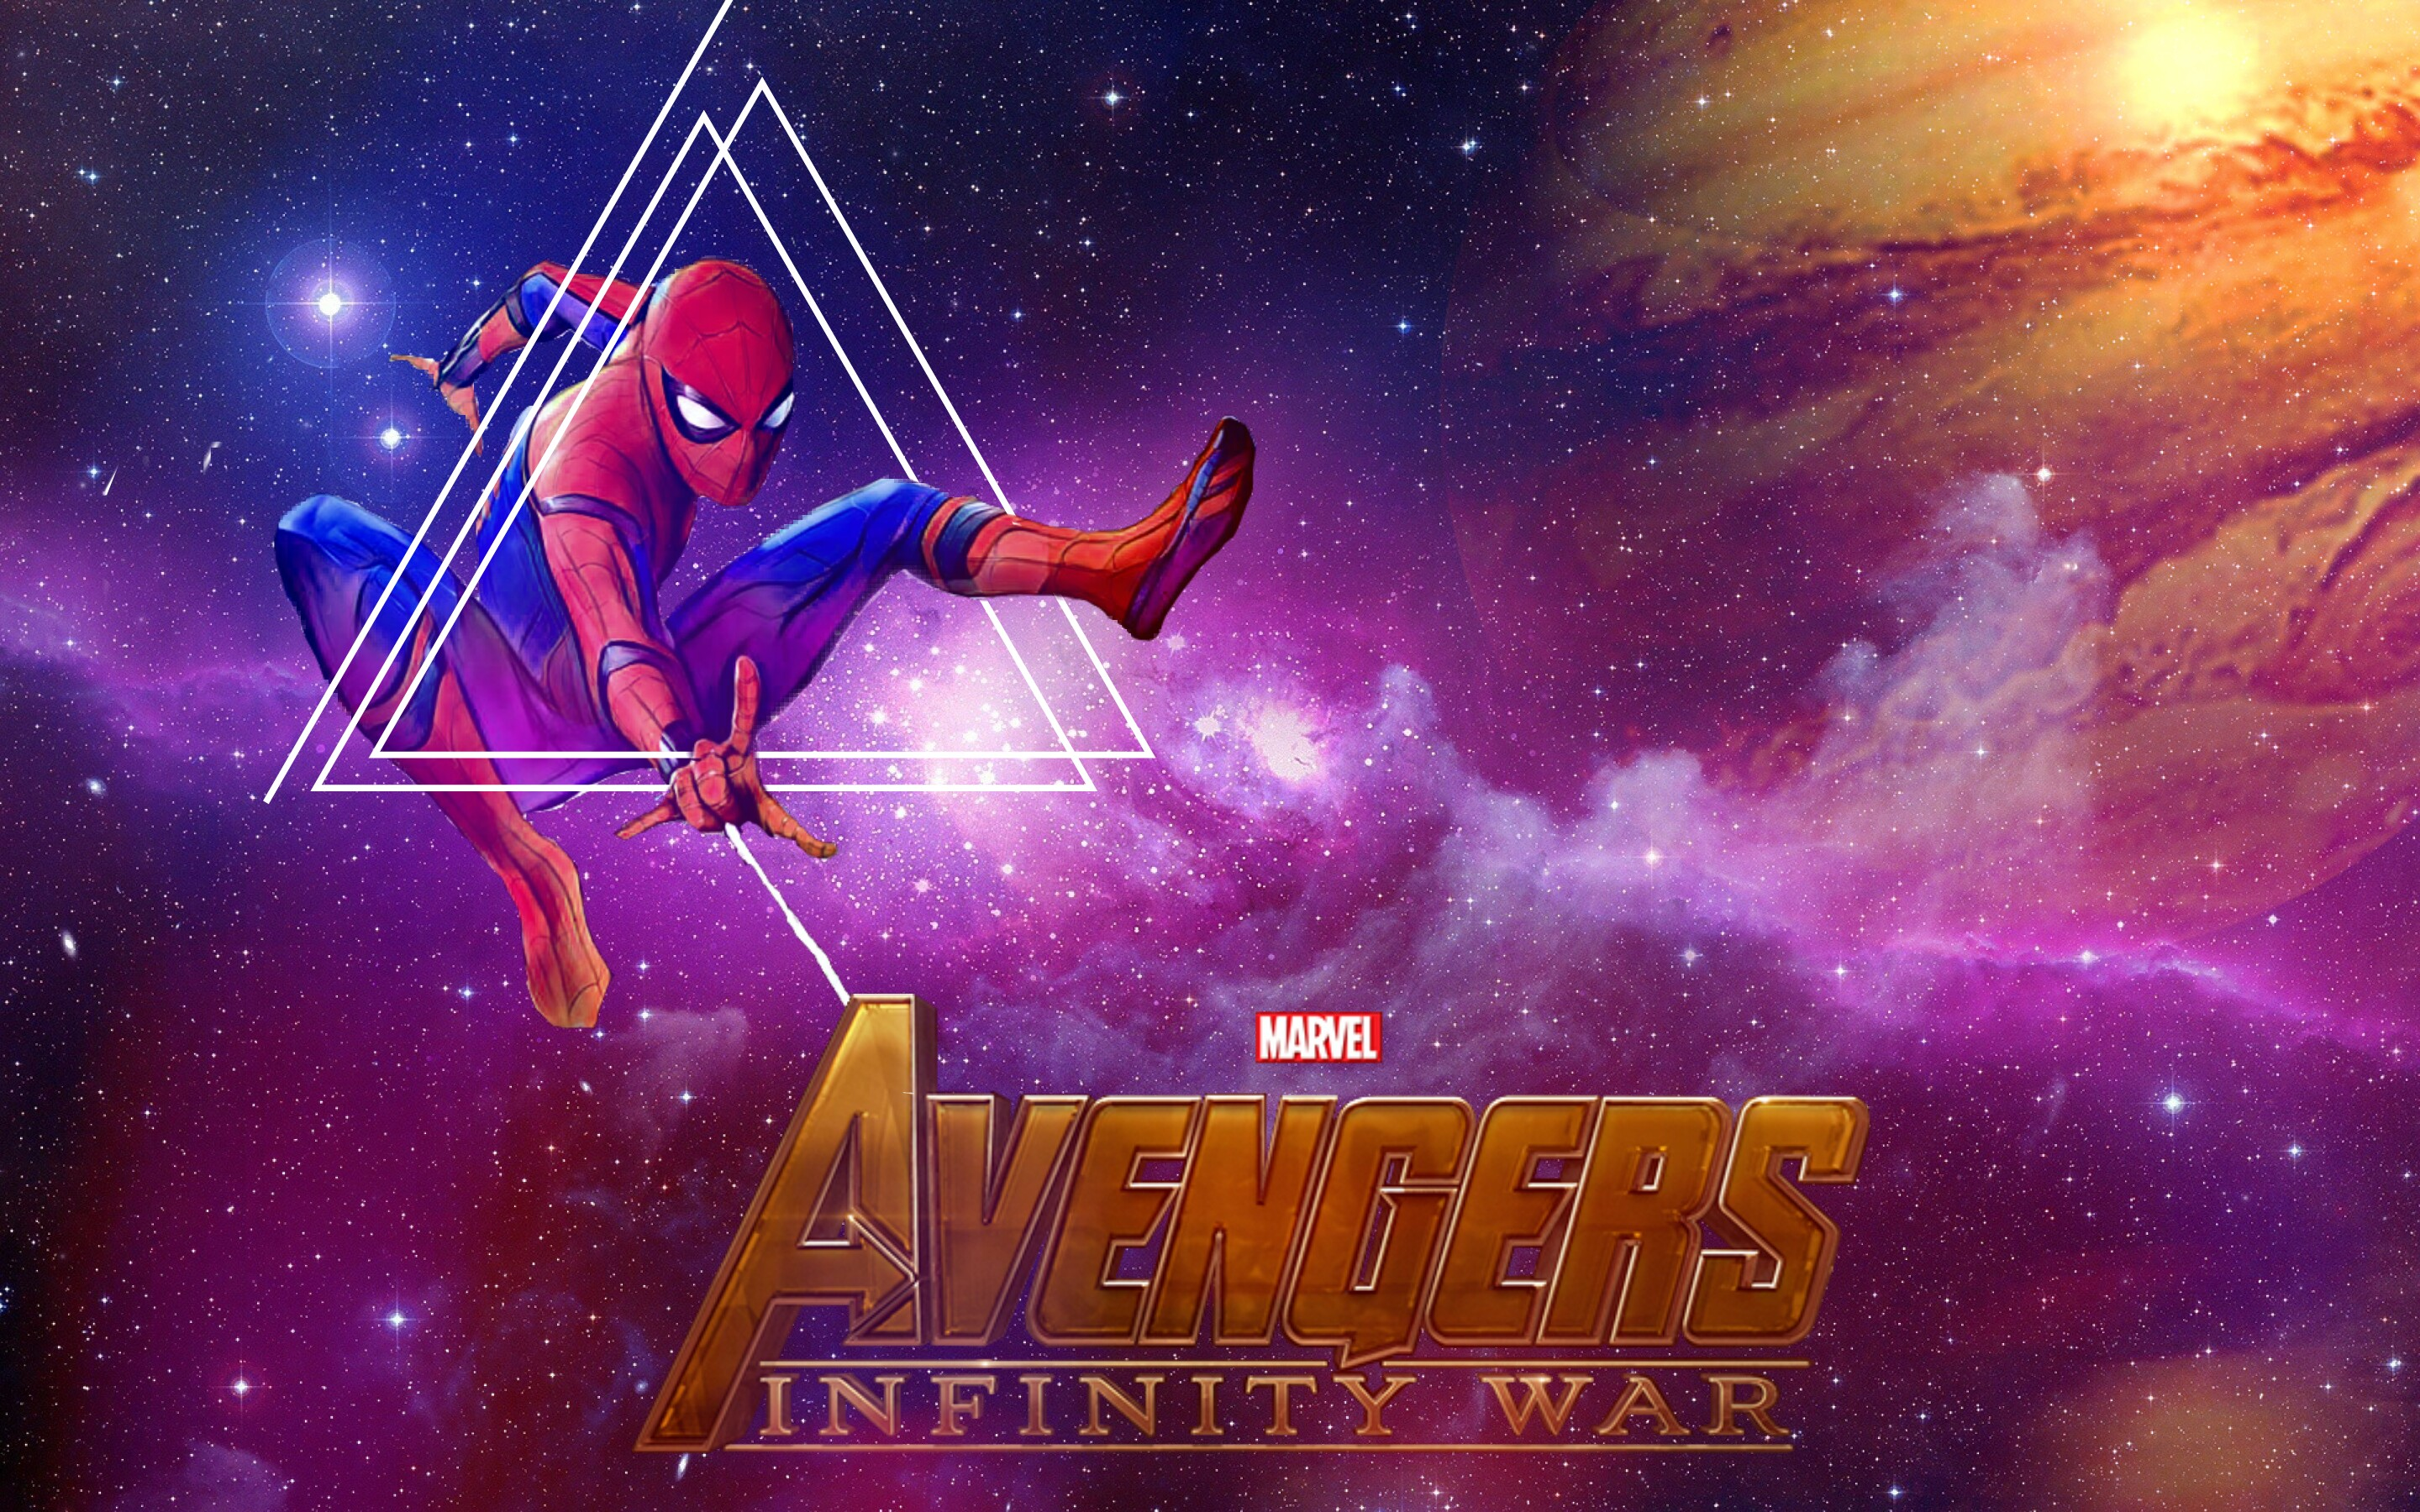 Avengers Infinity War Iphone Wallpaper: 1125x2436 Spiderman Avengers Infinity War Artwork Iphone